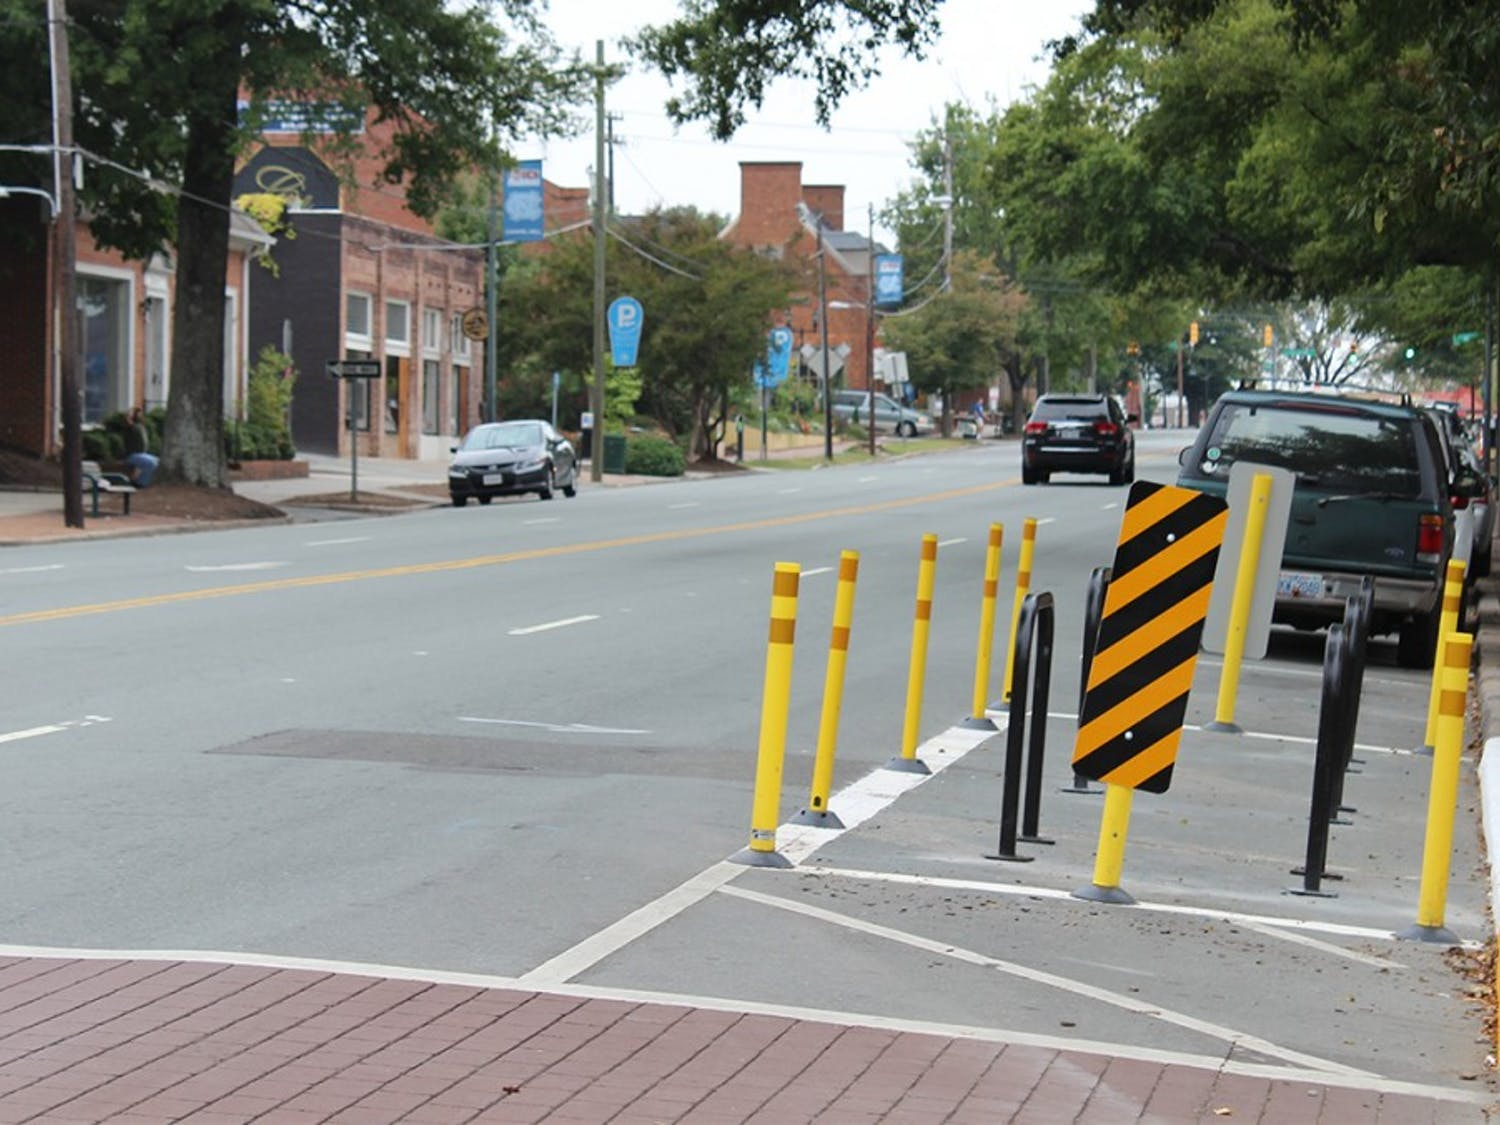 A biking corral has replaced a parking space on West Franklin Street.